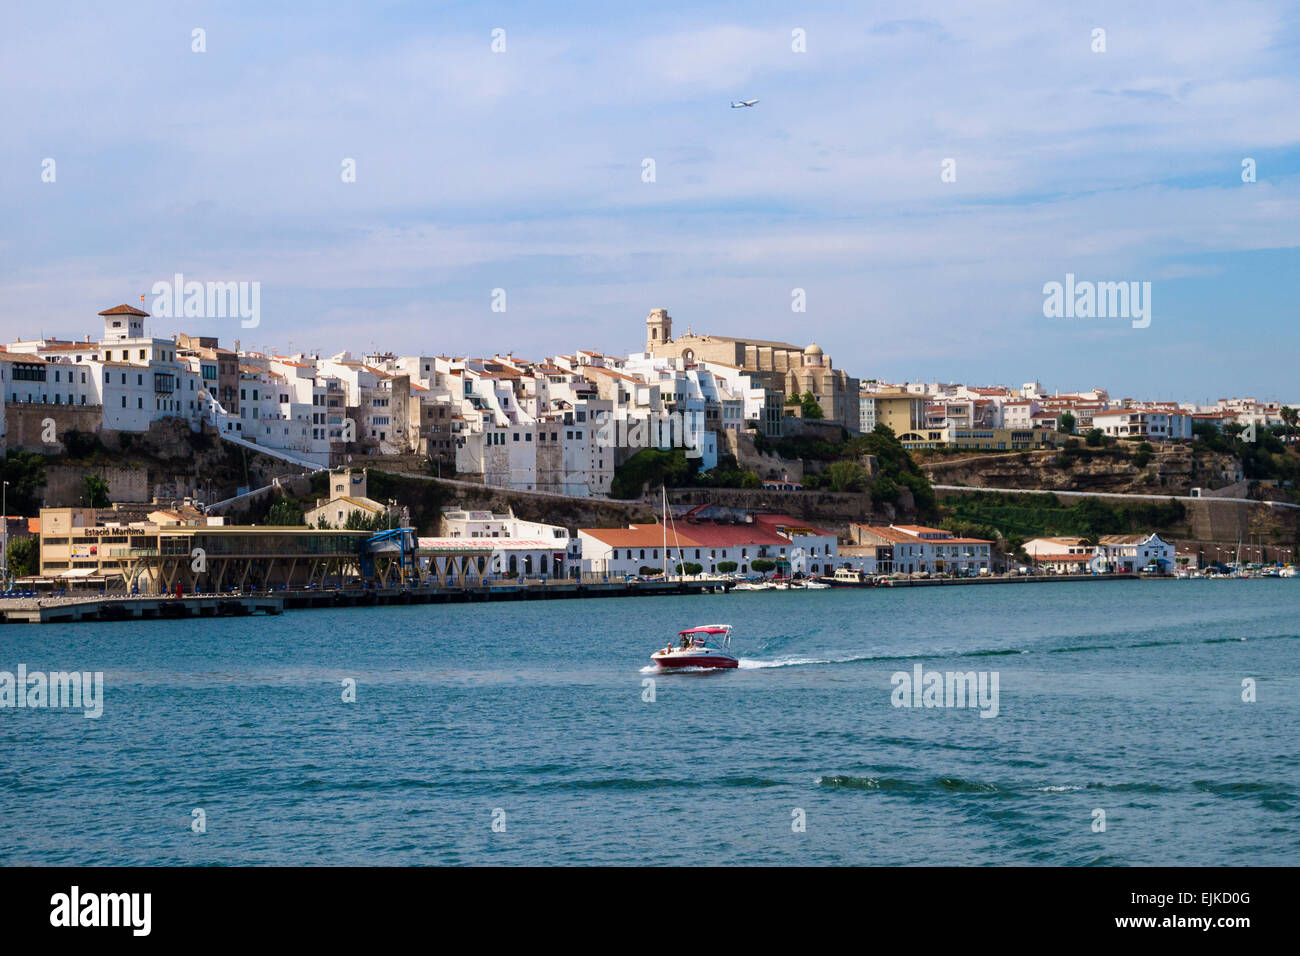 Port and old town of Mahon, Menorca, Spain - Europe Stock Photo, Royalty Free...